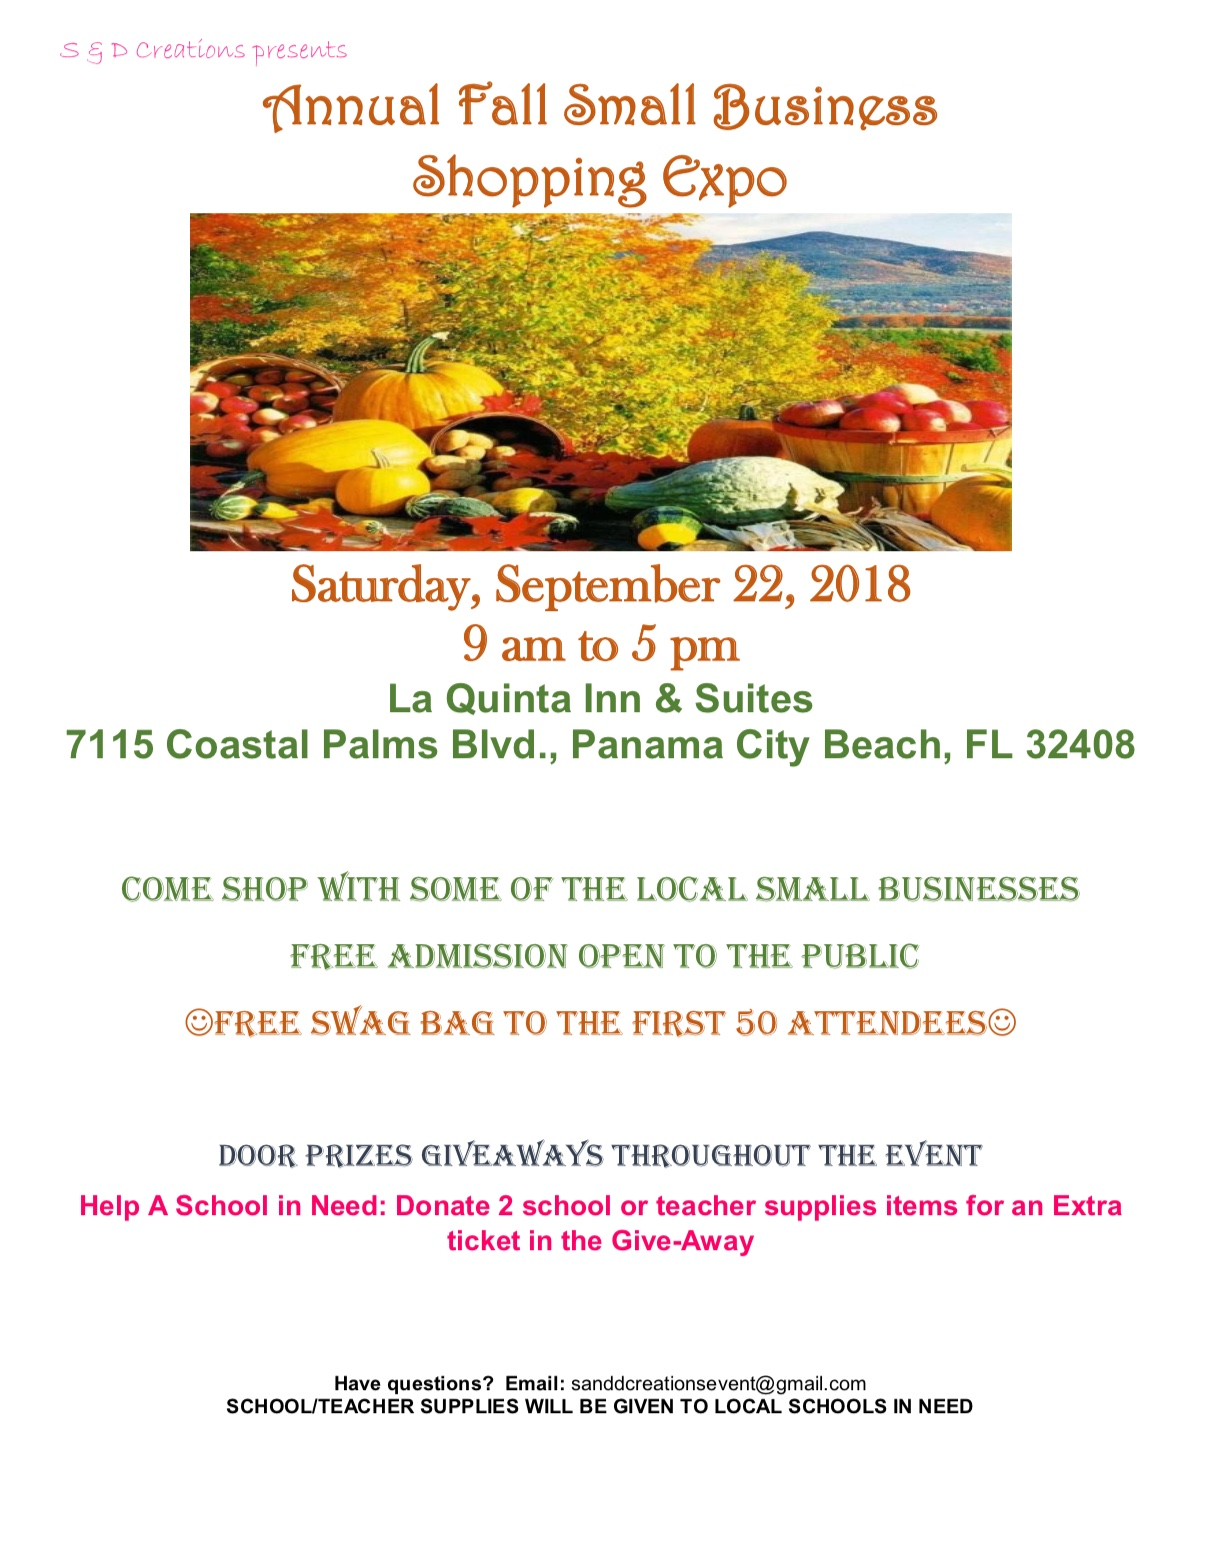 Annual Fall Small Business Shopping Expo - Bay County